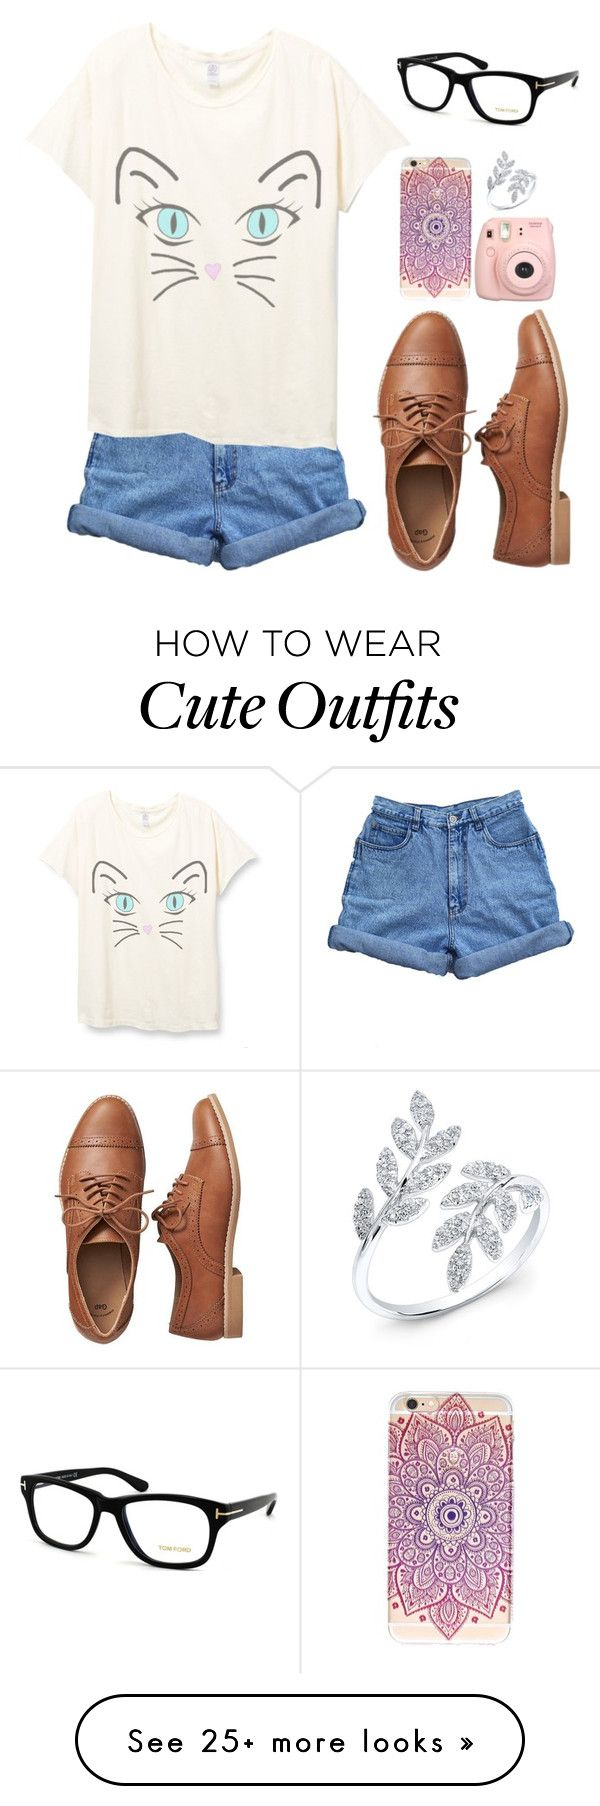 quotcute geeky outfitquot by bellaboow1 on polyvore featuring